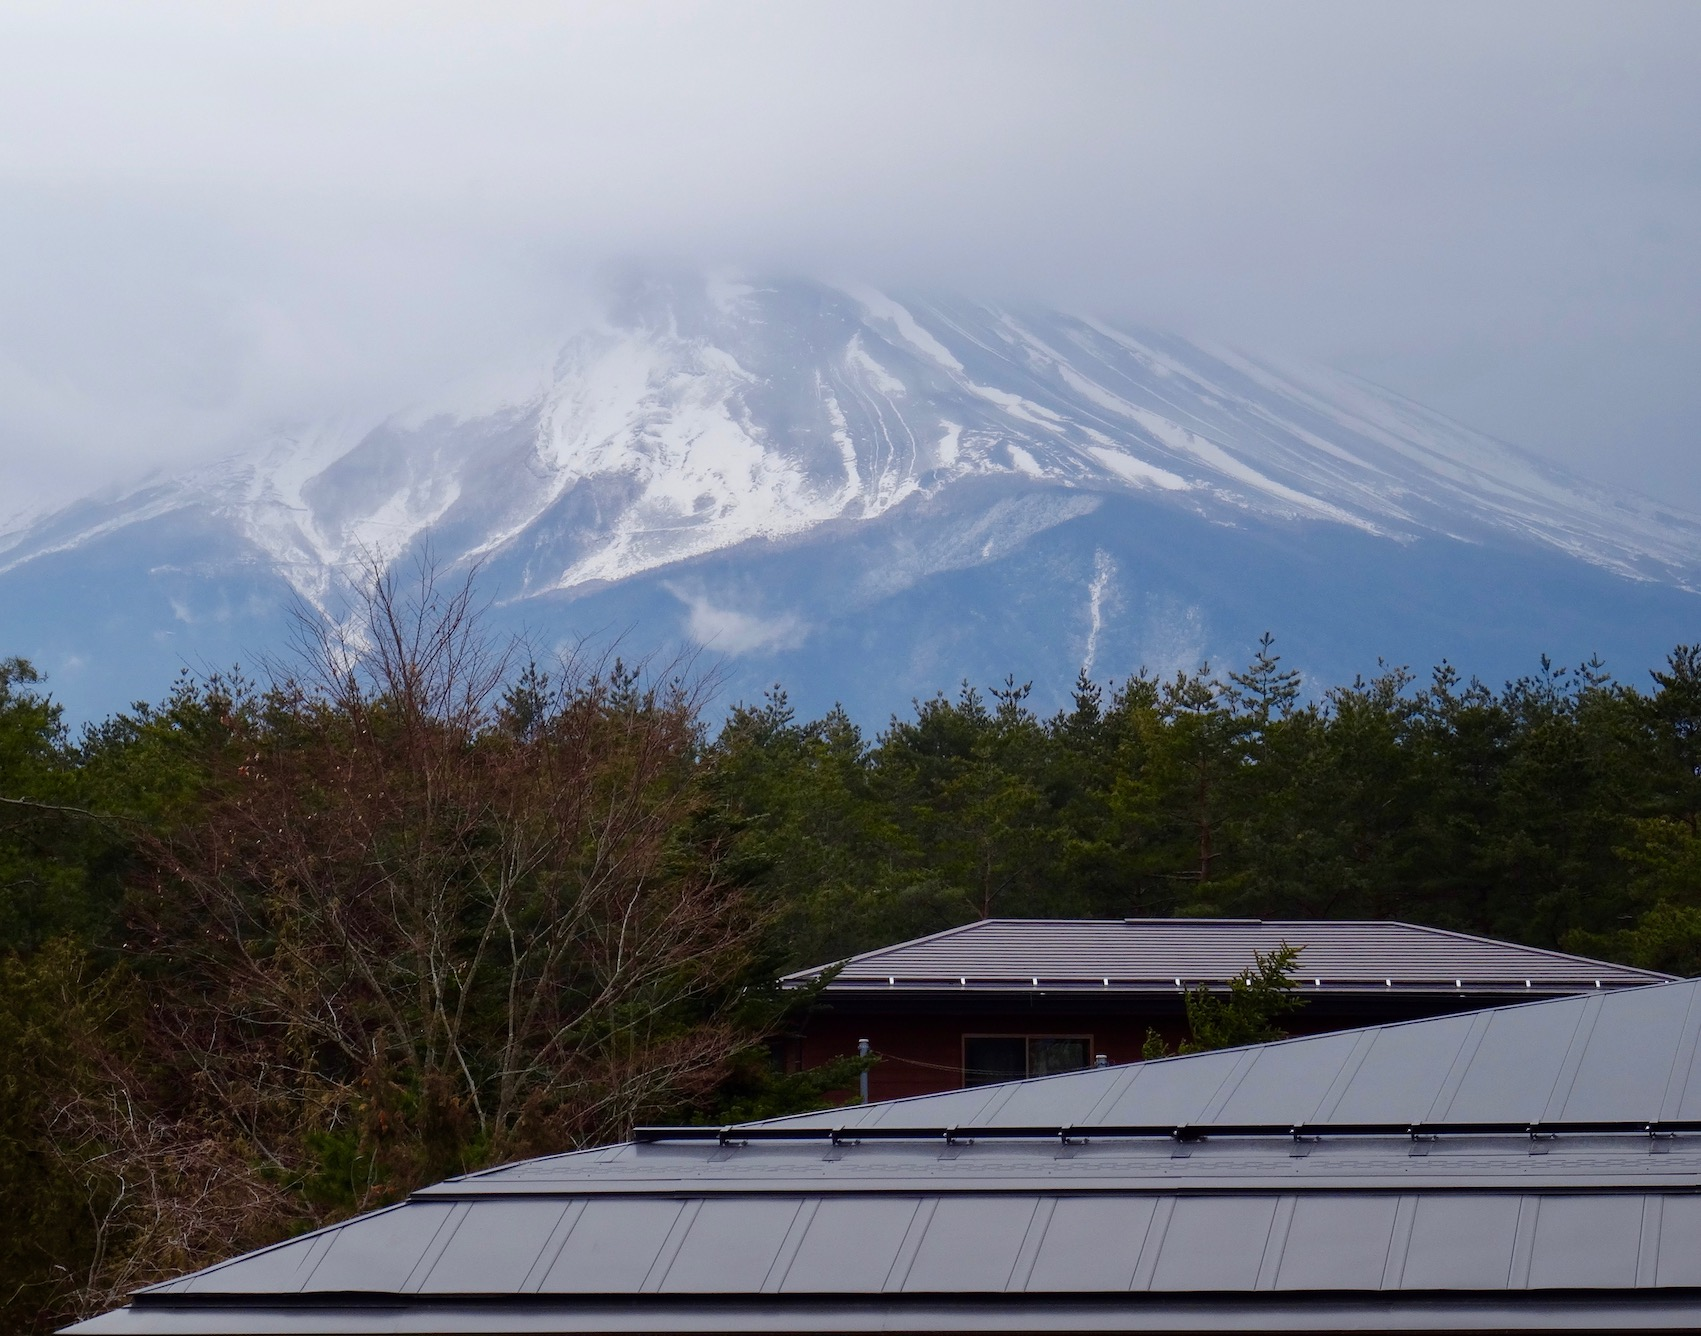 Mount Fuji from Fujisan World Heritage Center Japan.